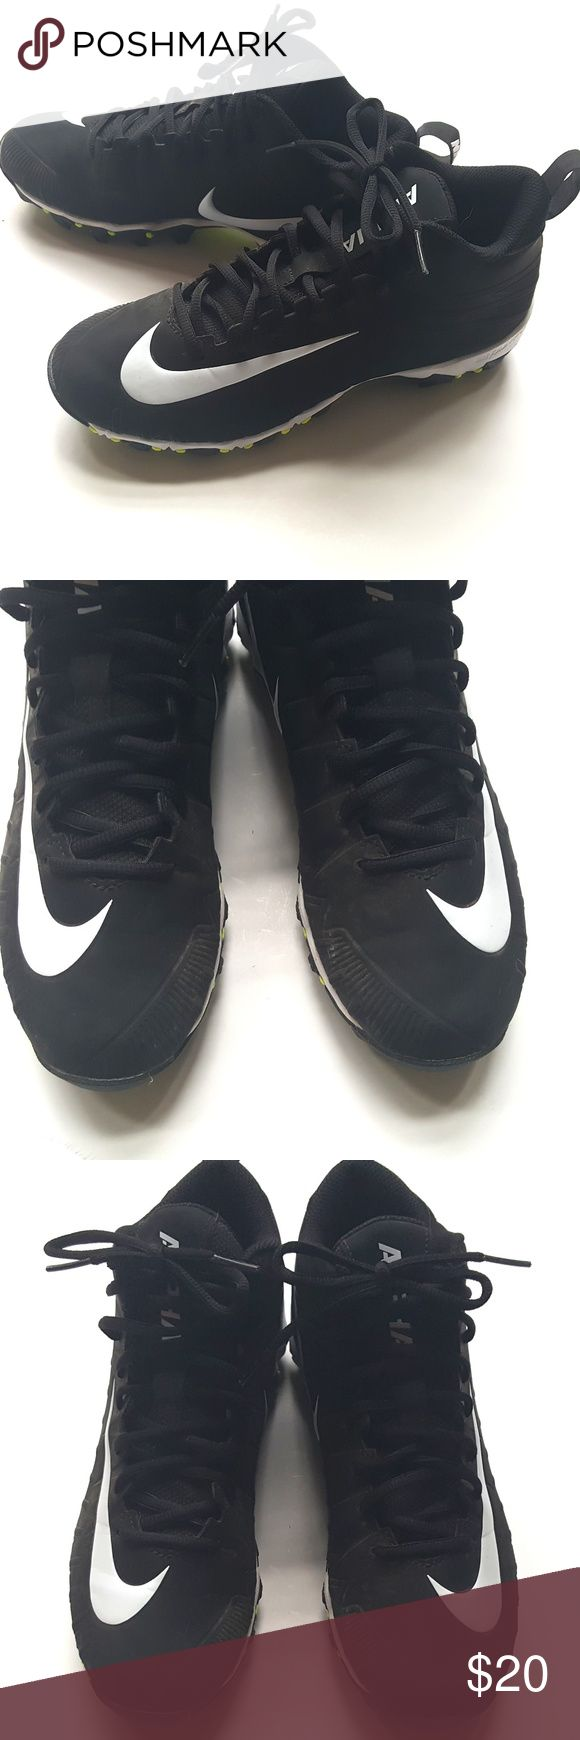 Nike Men's Alpha Menace Shark Football Cleats Shoe Nike Men's Alpha Menace Shark Football Cleats Shoes Black   Sz 7 Mens  VGUC, a few light smudges, no other wear or flaws.  My items come from a smoke-free household, we do have a kitty, so an occasional hair may occur! Nike Shoes Athletic Shoes